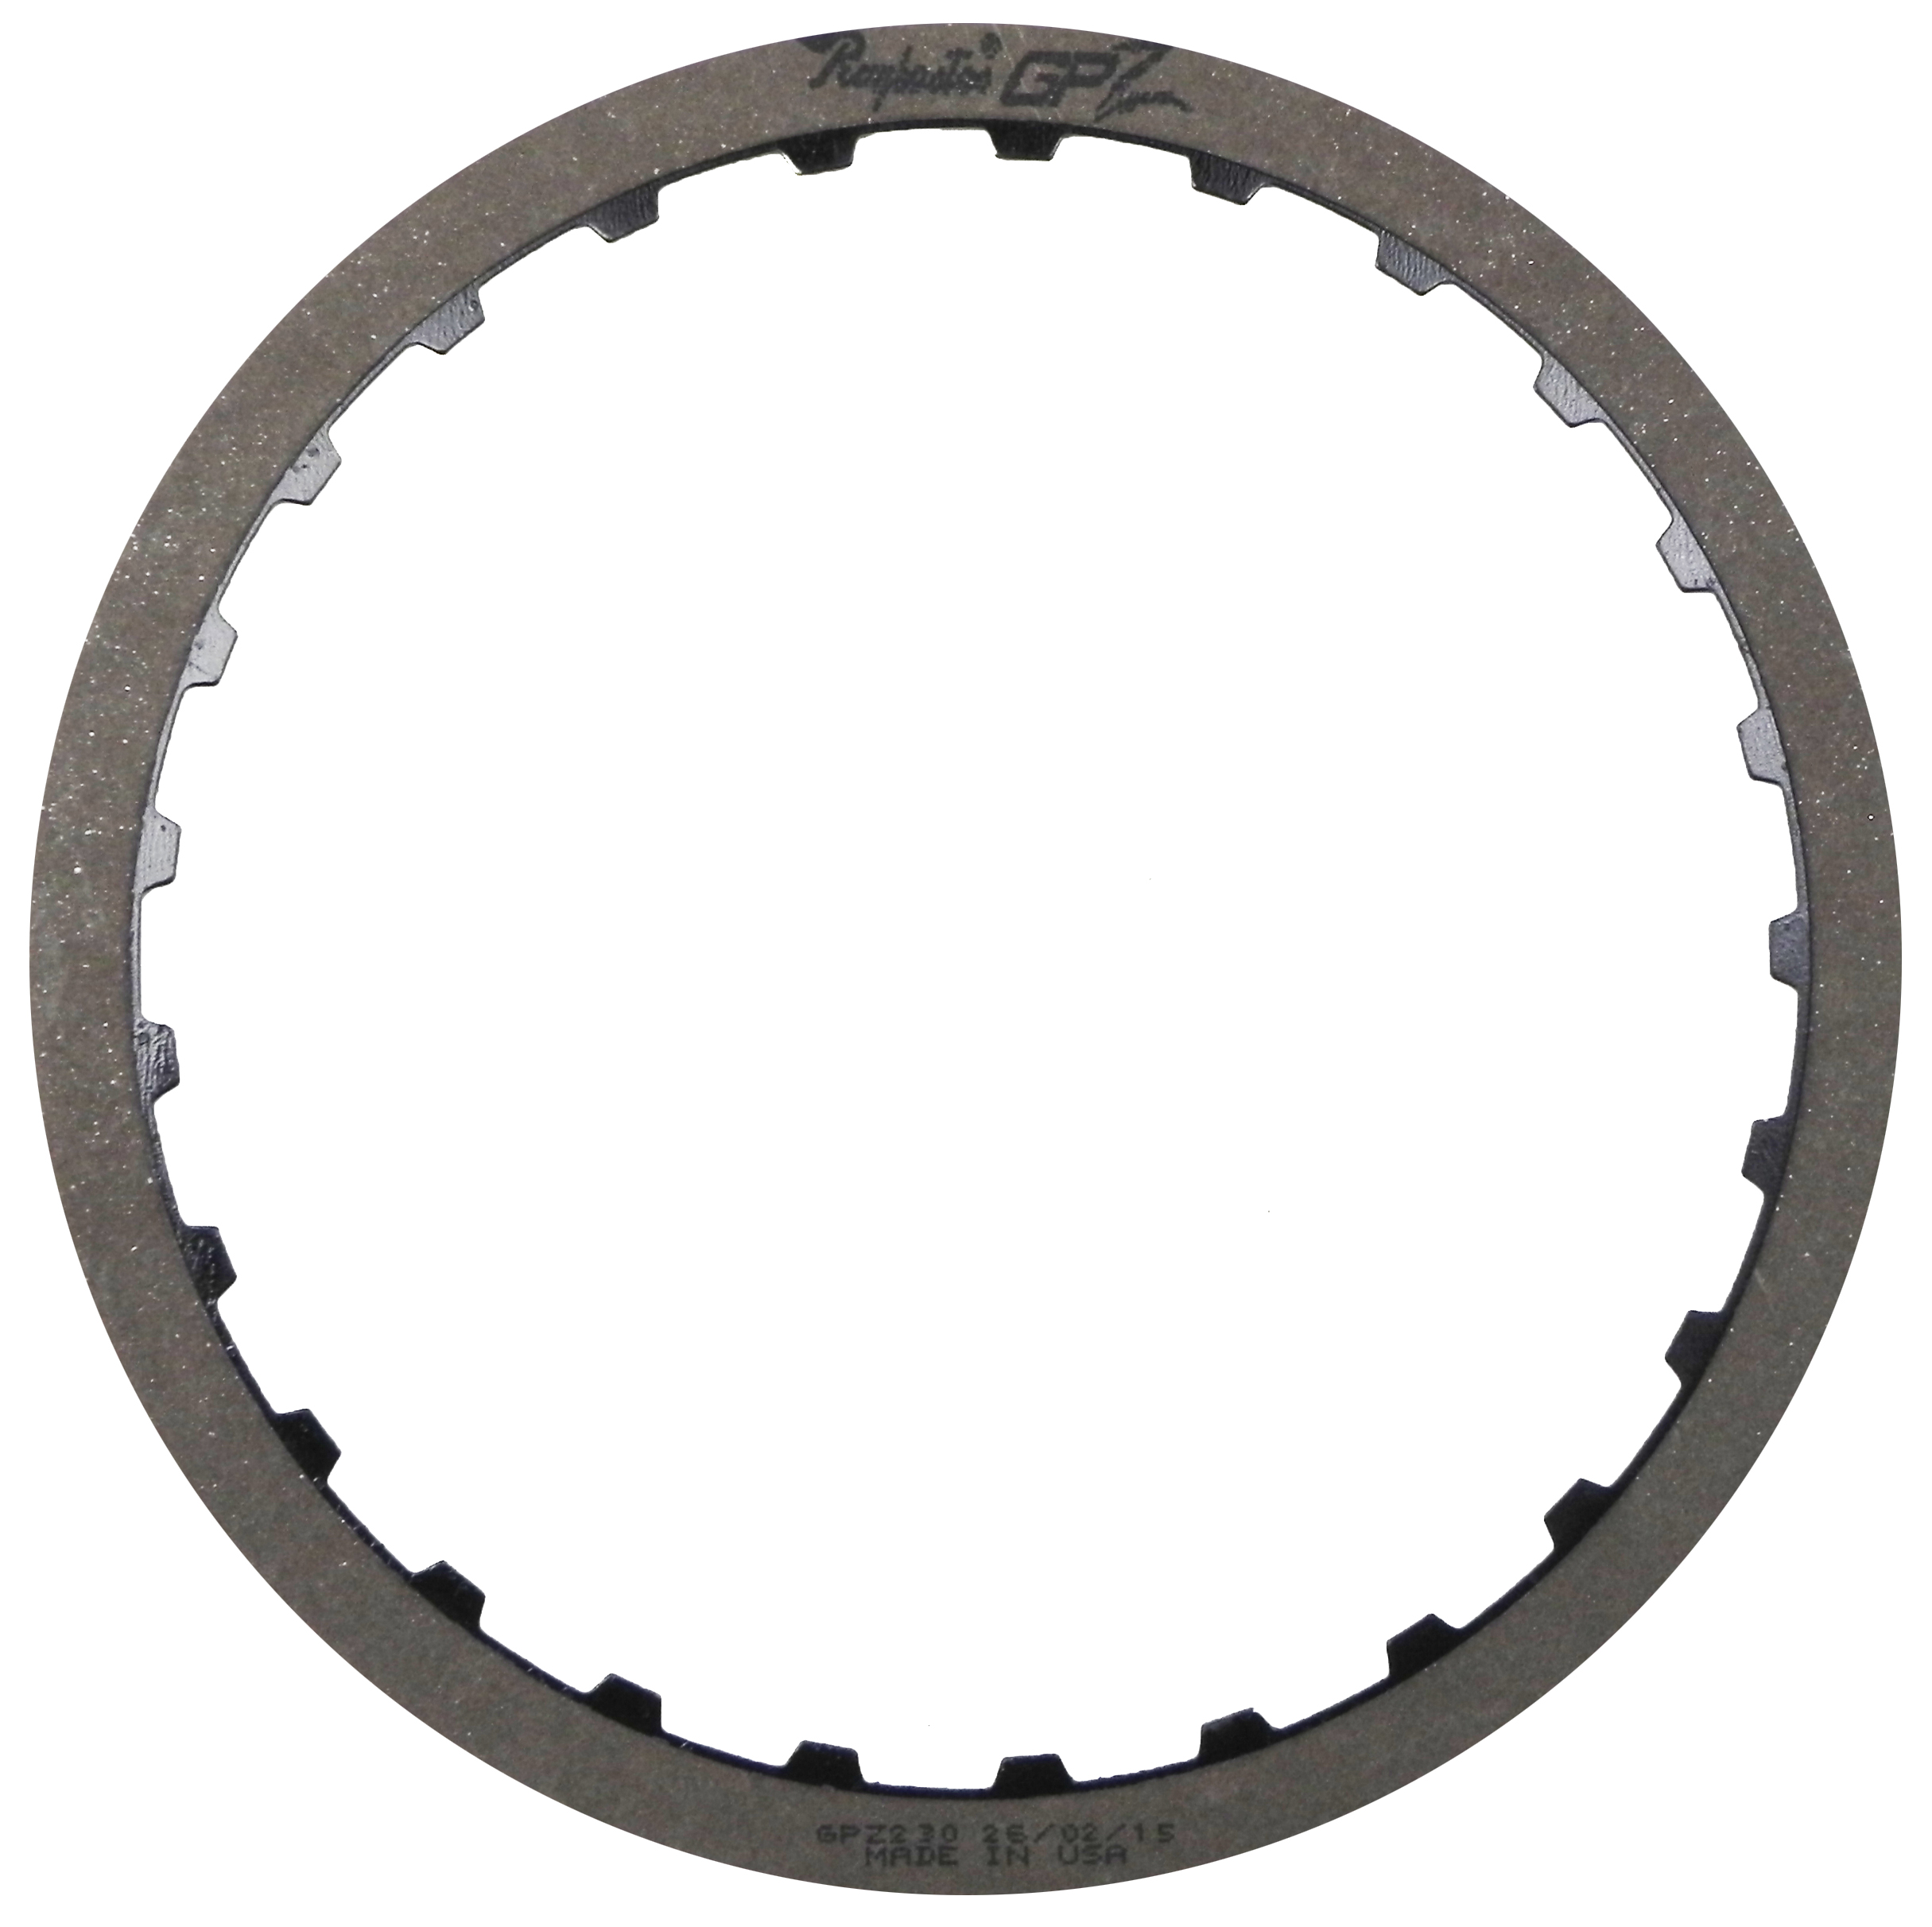 POWERGLIDE GPZ Friction Clutch Plate